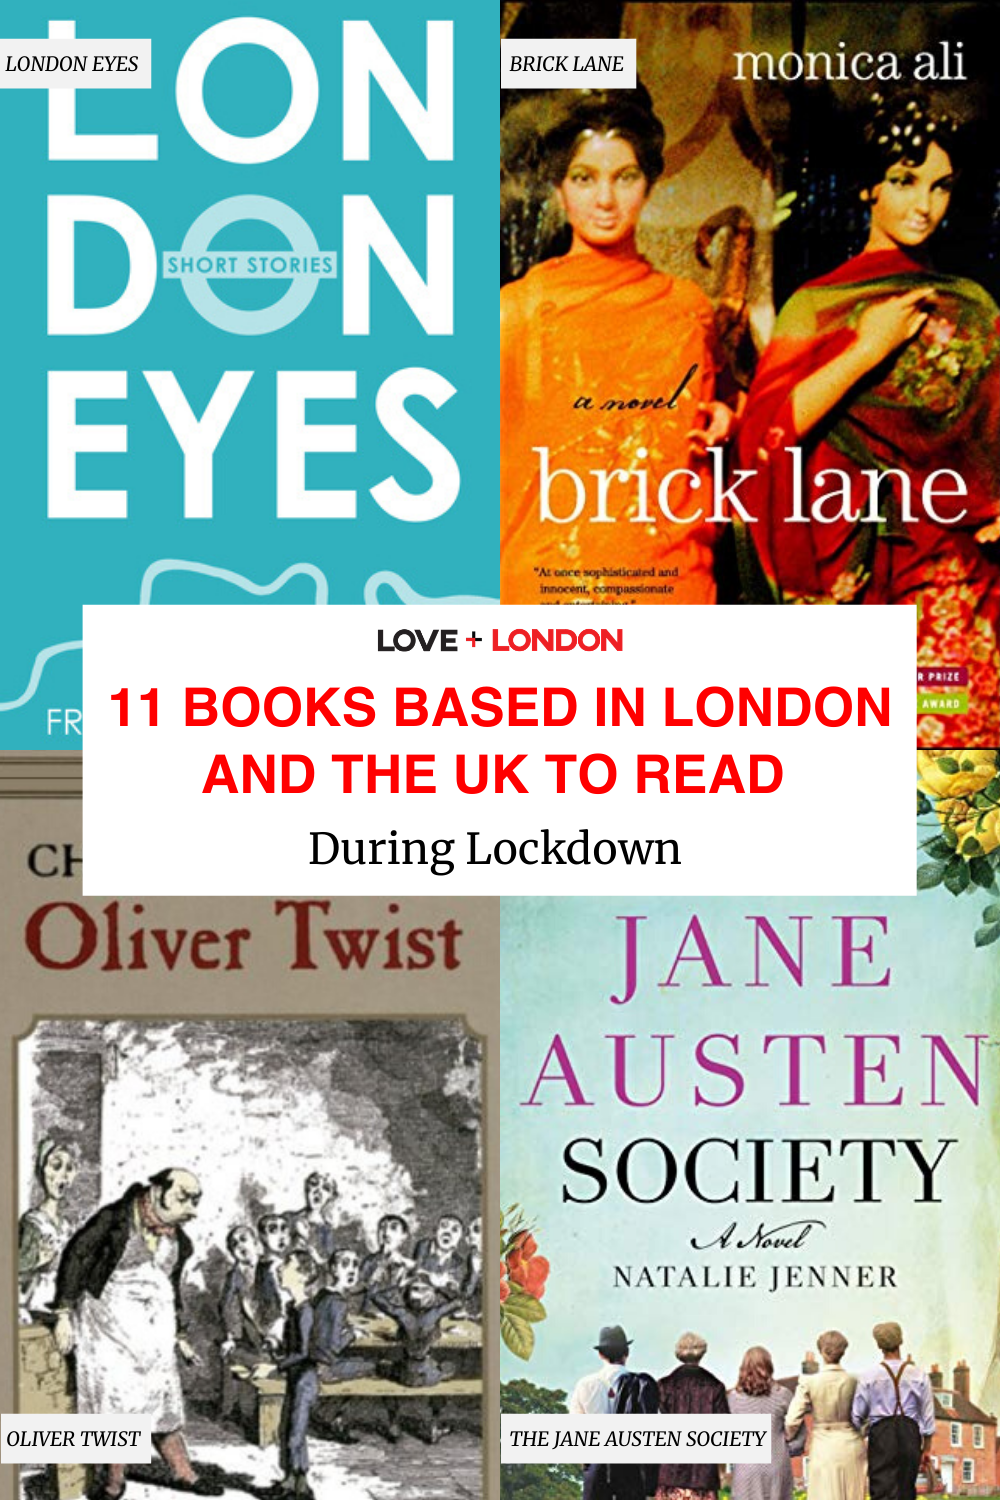 London and UK-based books to read to cure your London blues